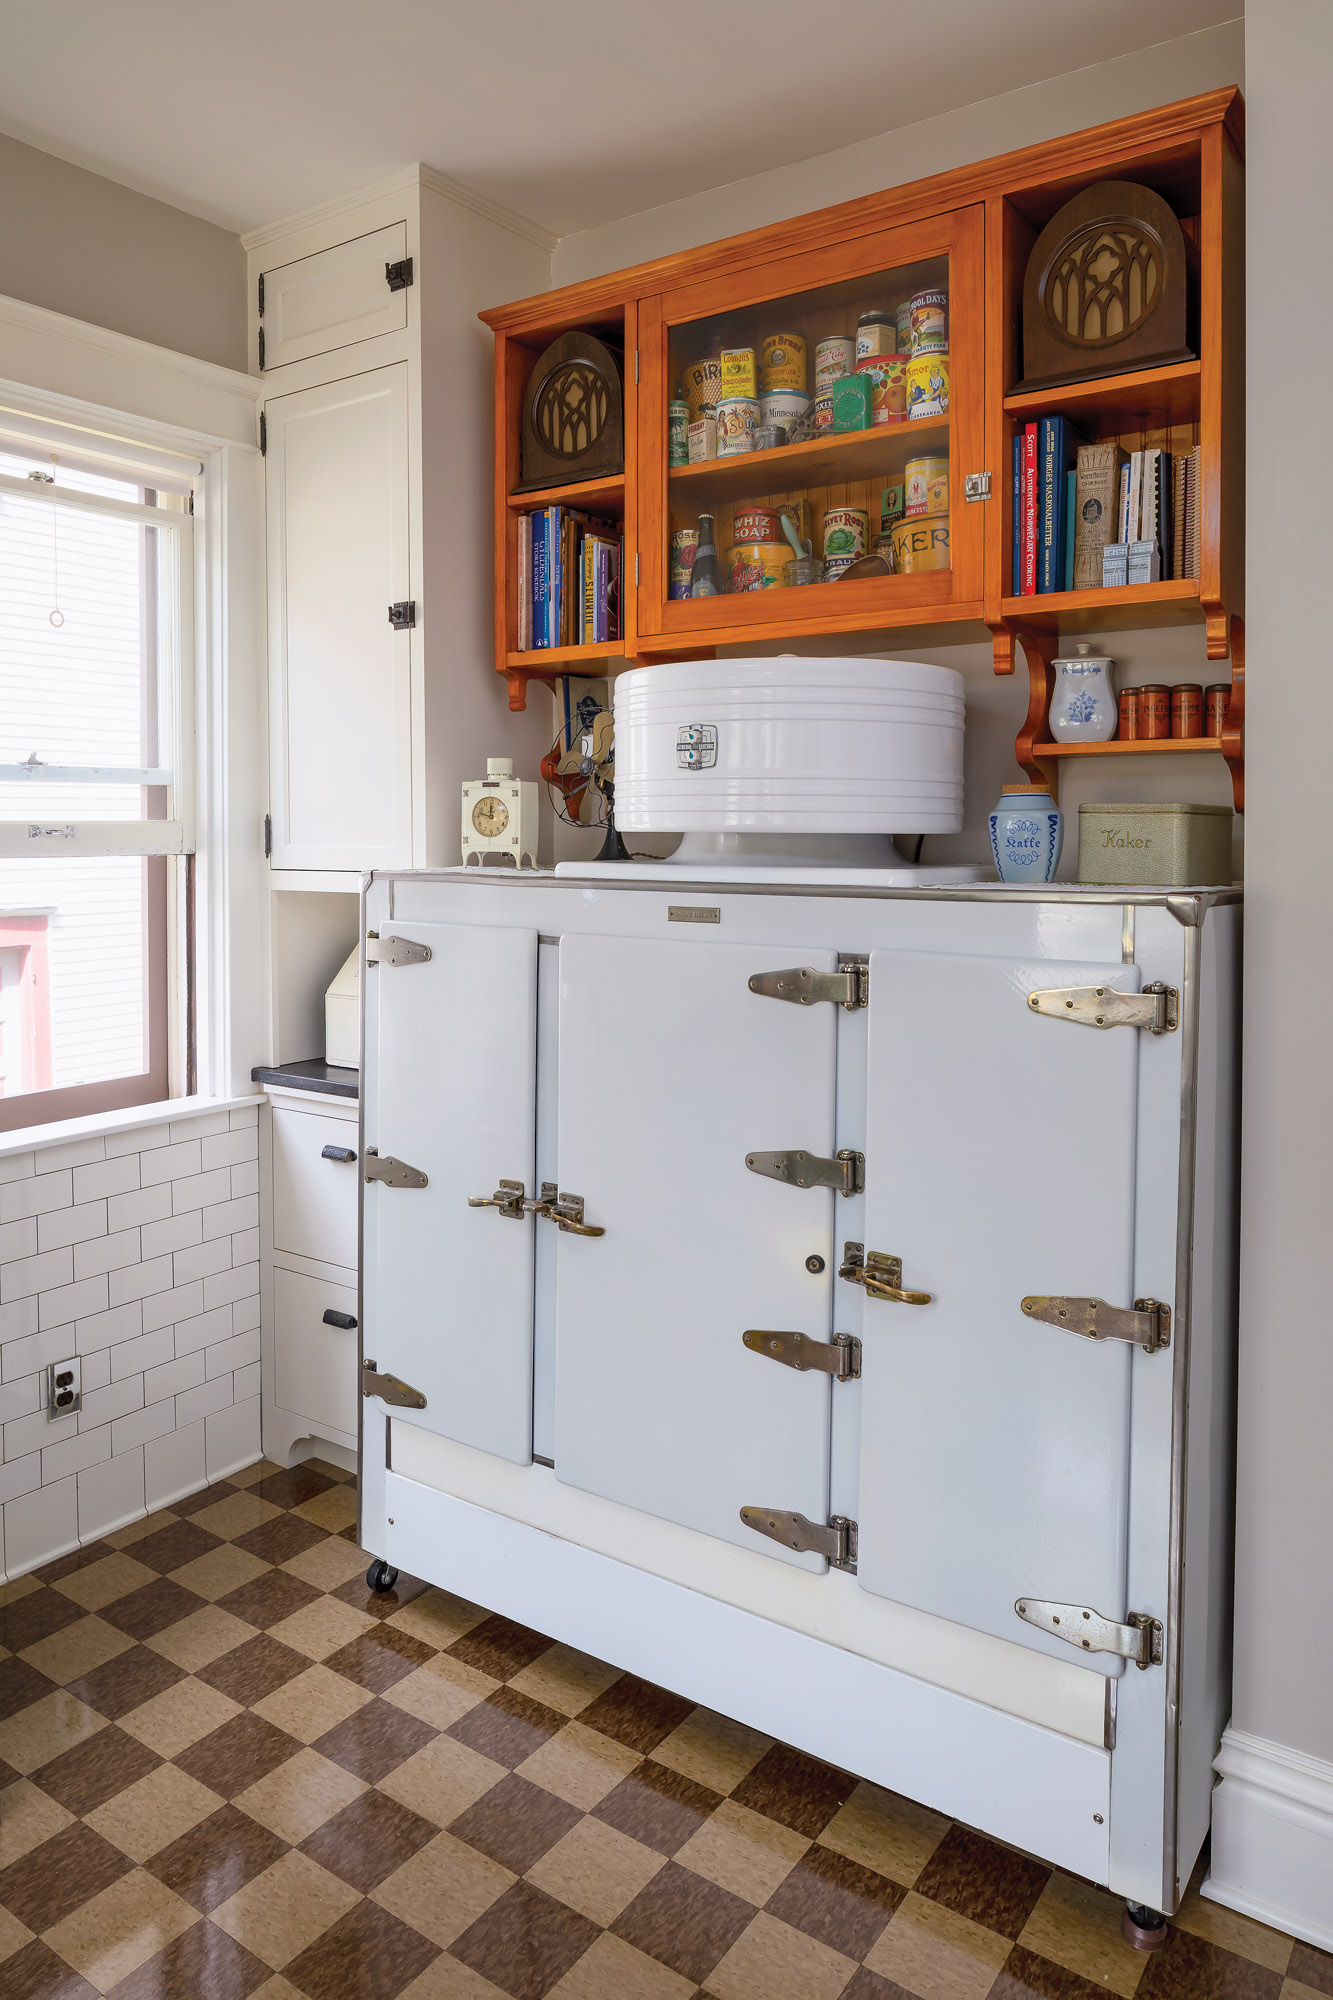 """In the new """"period"""" kitchen, they used antique appliances, lighting, and plumbing fittings, but integrated them with top-of-the-line contemporary elements."""